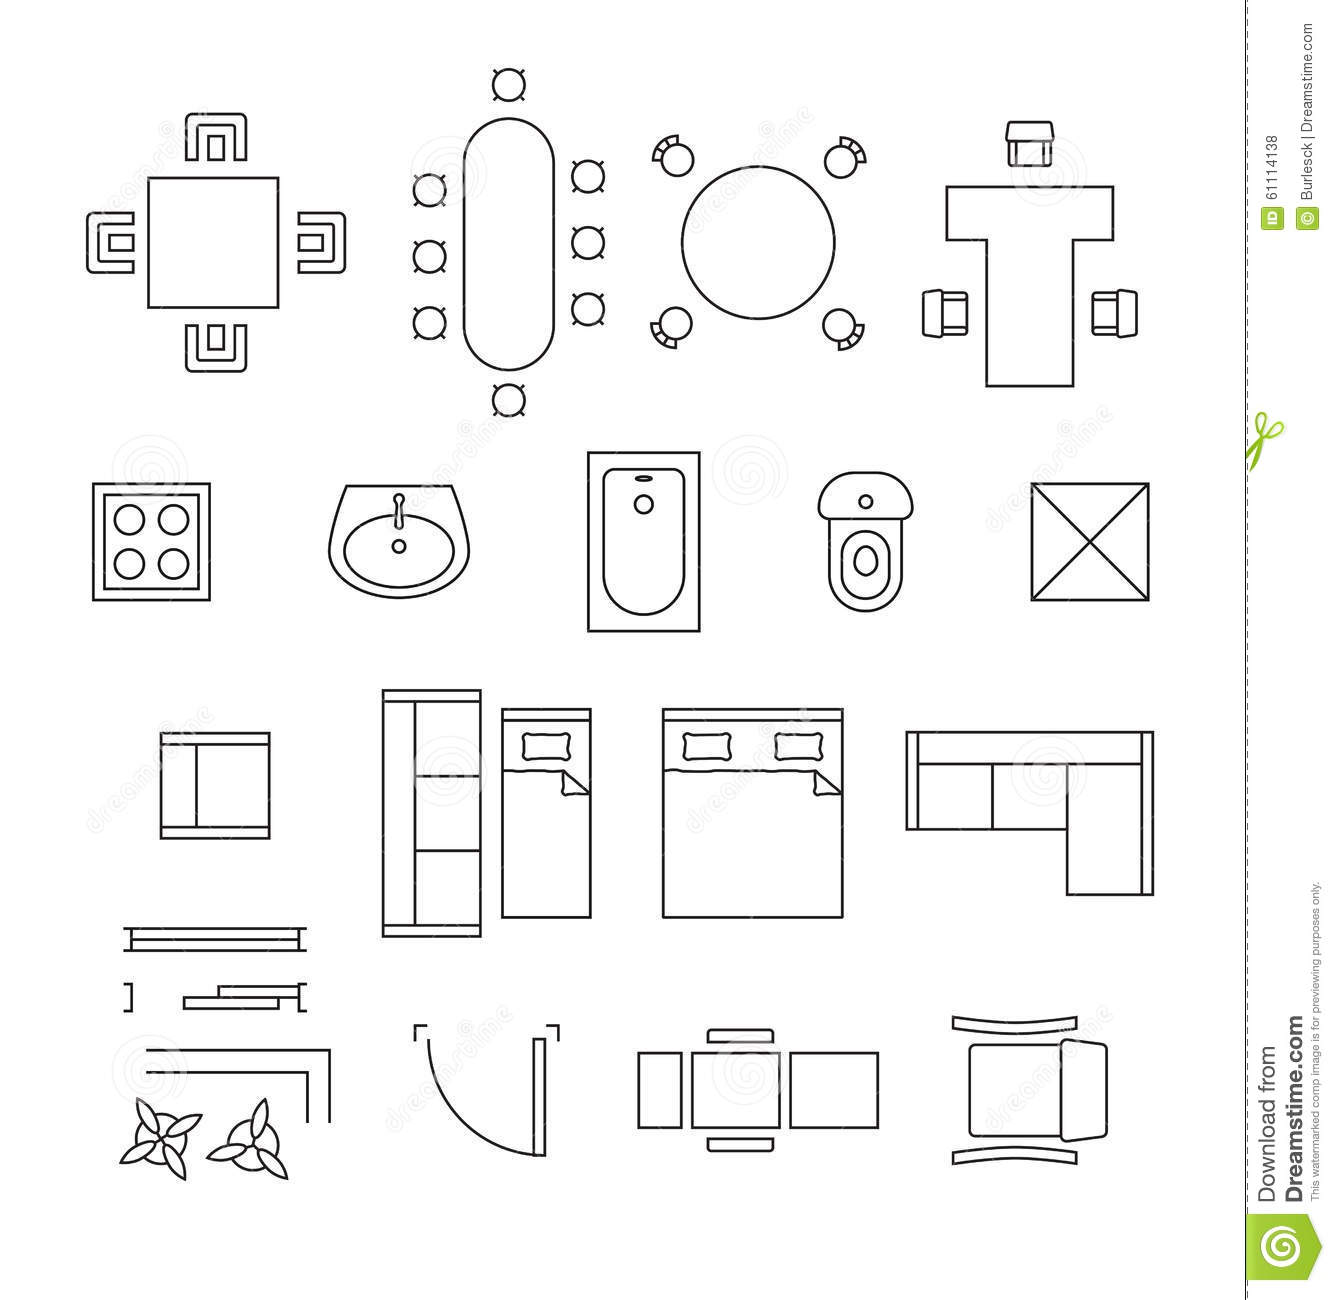 Black White Interior Design Furniture For Floor Plan ~ Furniture linear vector symbols floor plan icons stock